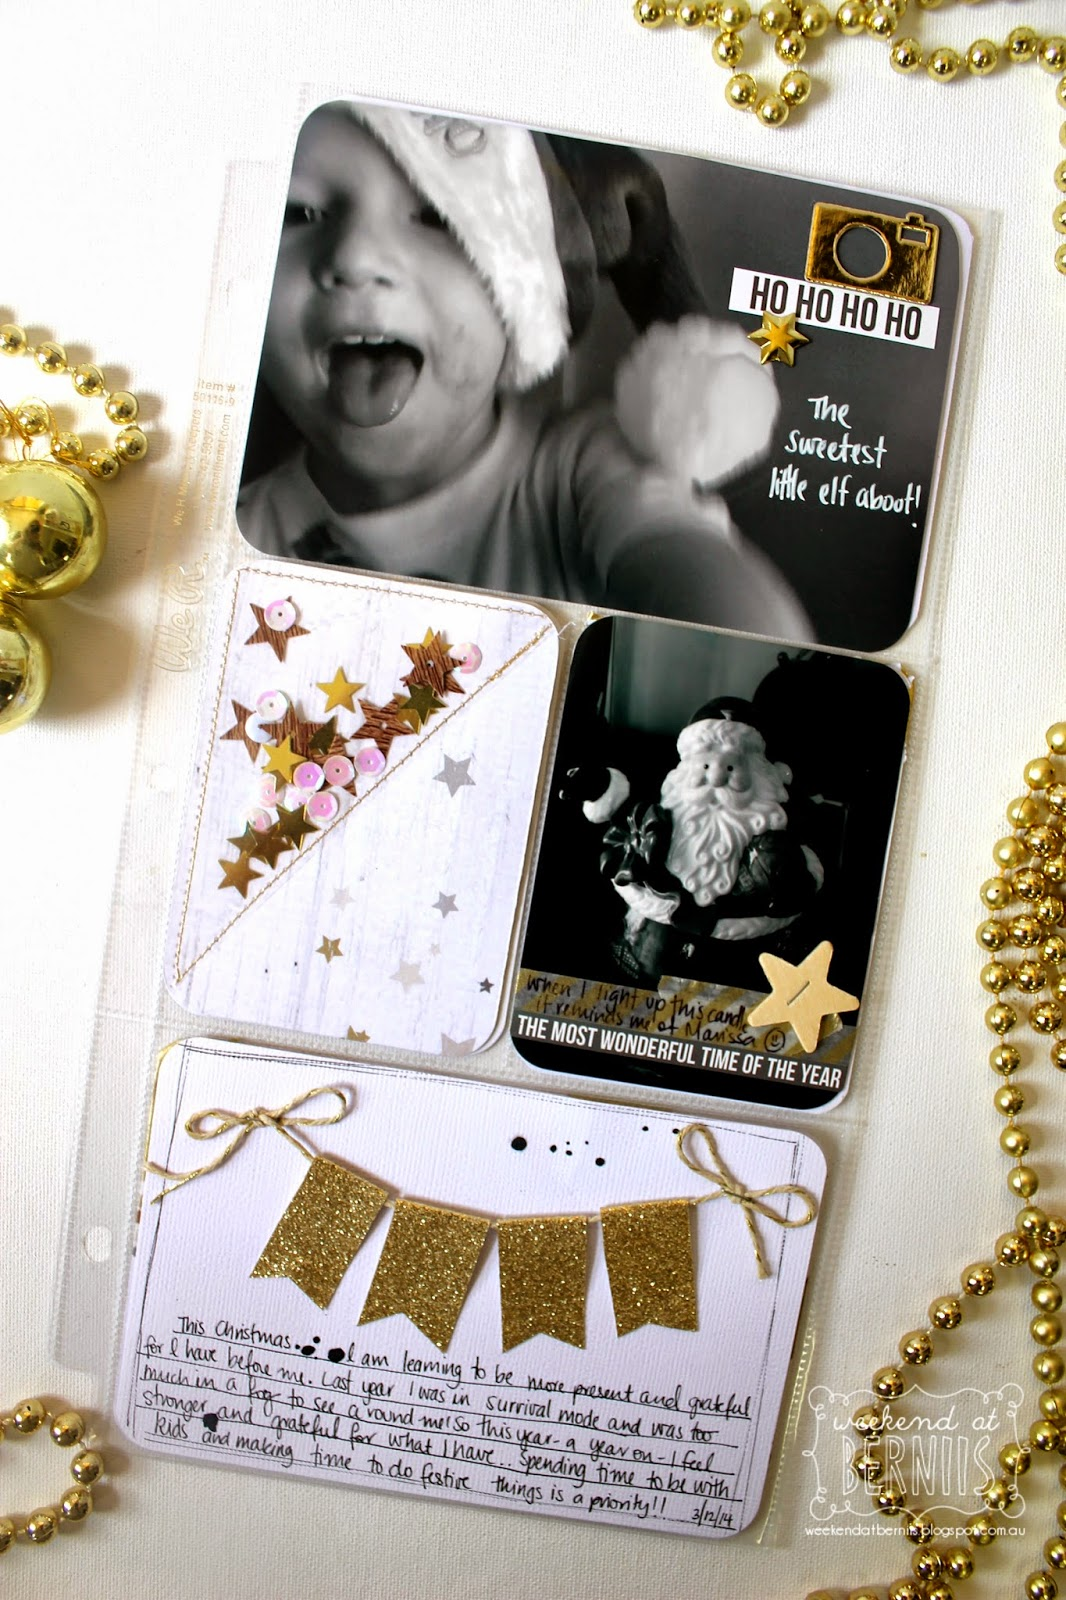 December Daily with Bernii Miller using the Stamp Spot Documented December Kit.